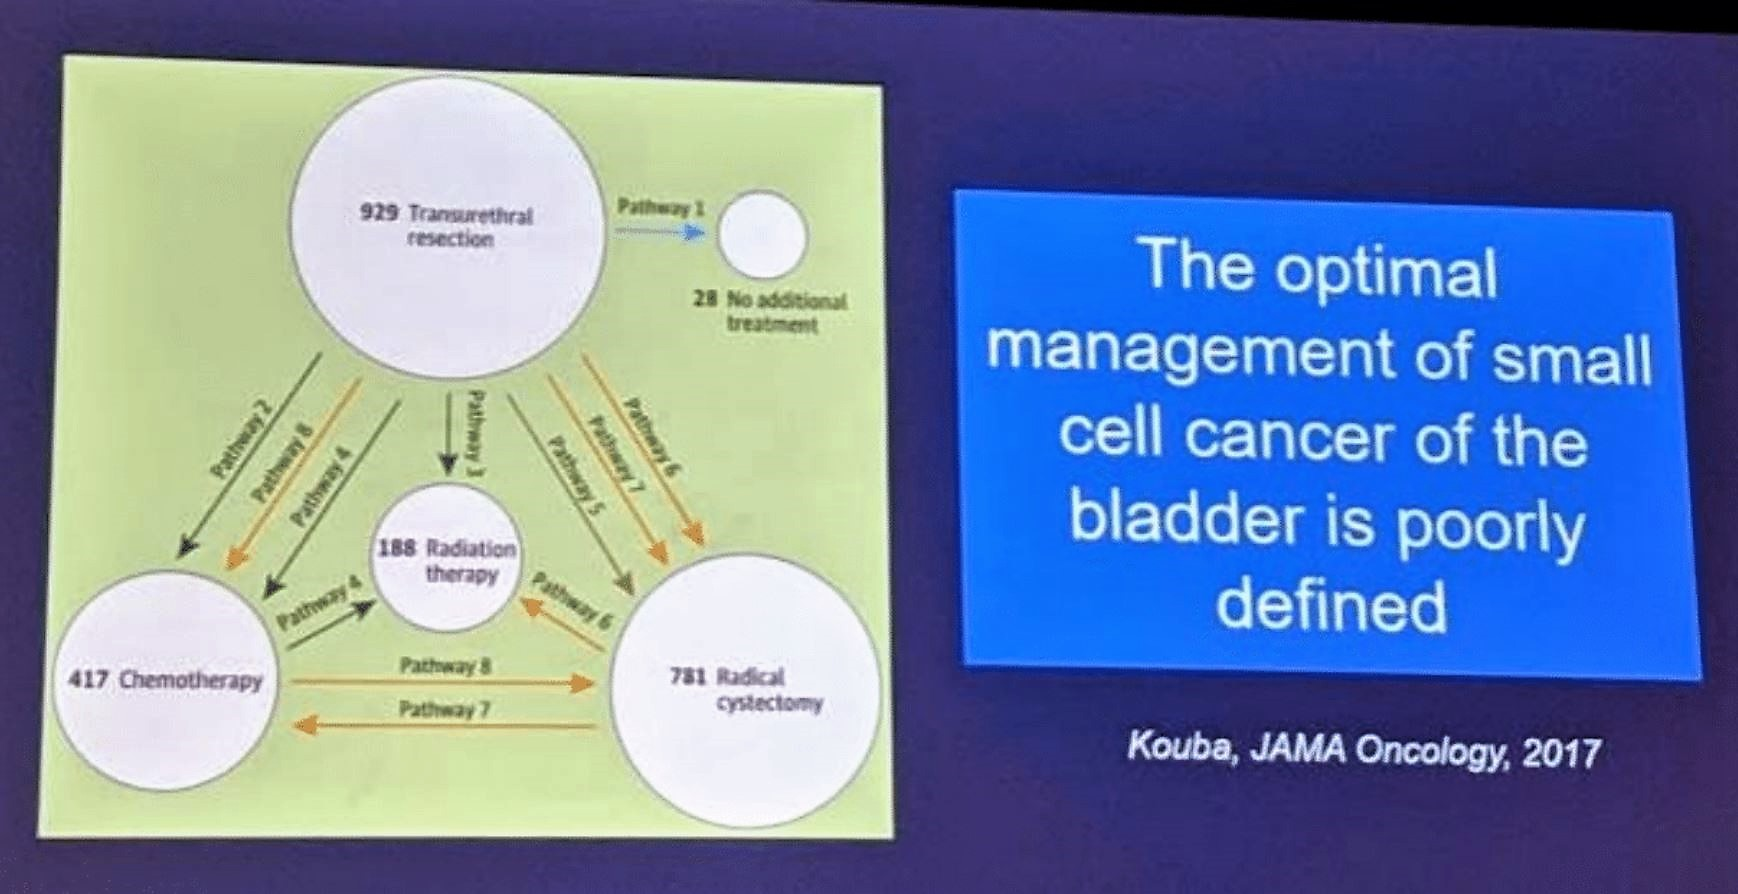 ASCO GU 2019 management of small cell bladder cancer